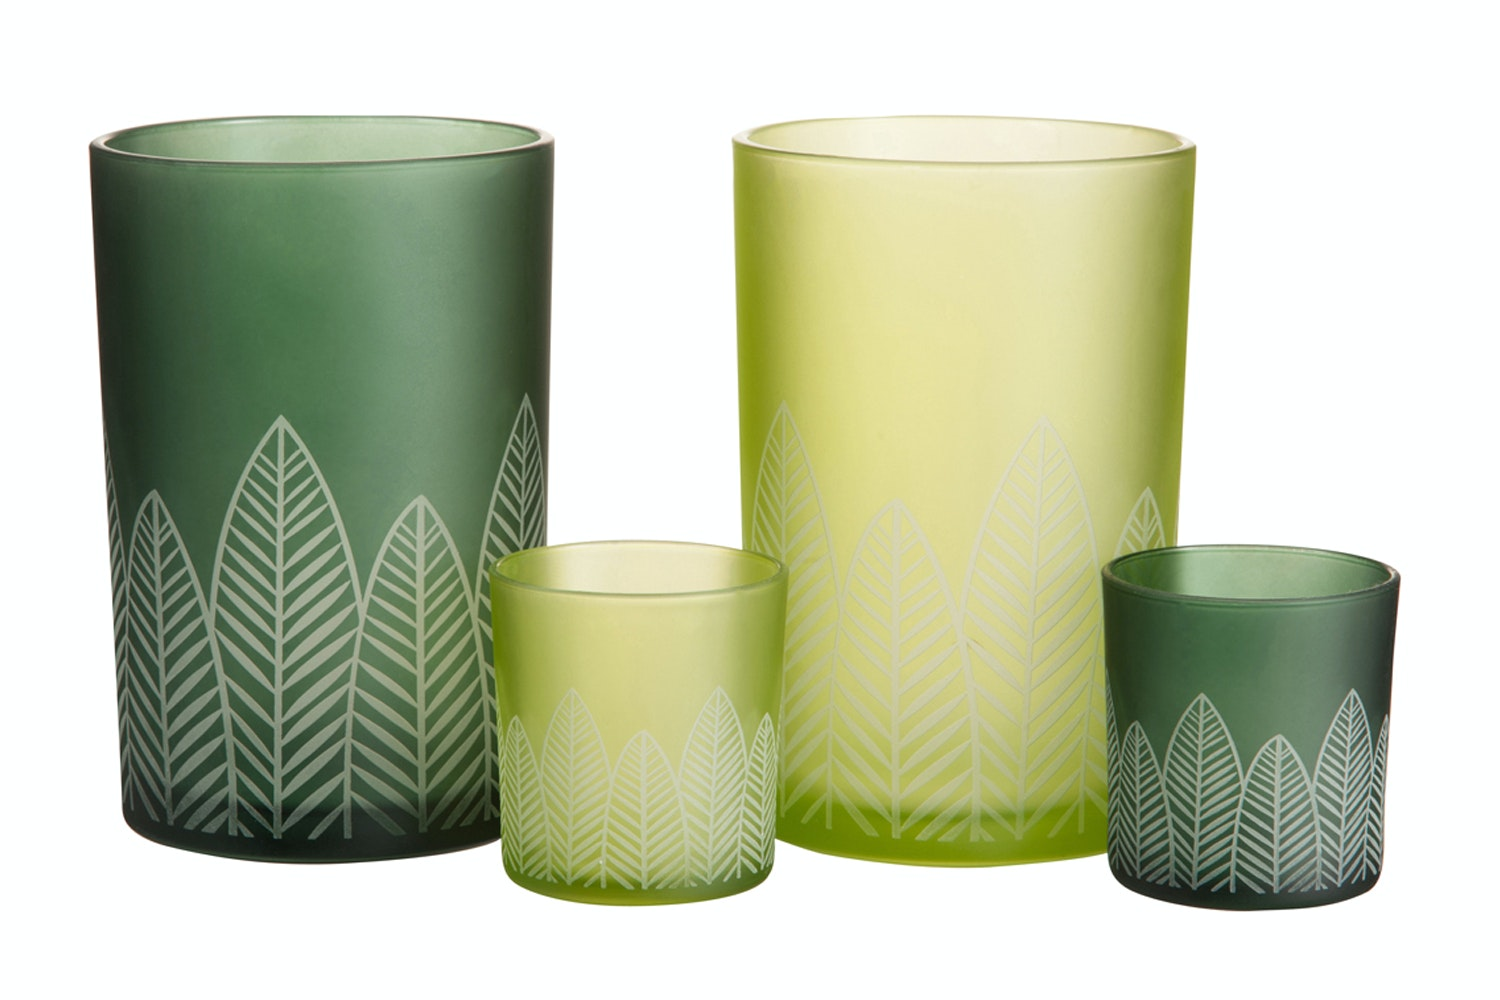 Green Hurricane Glass with Leaf Print